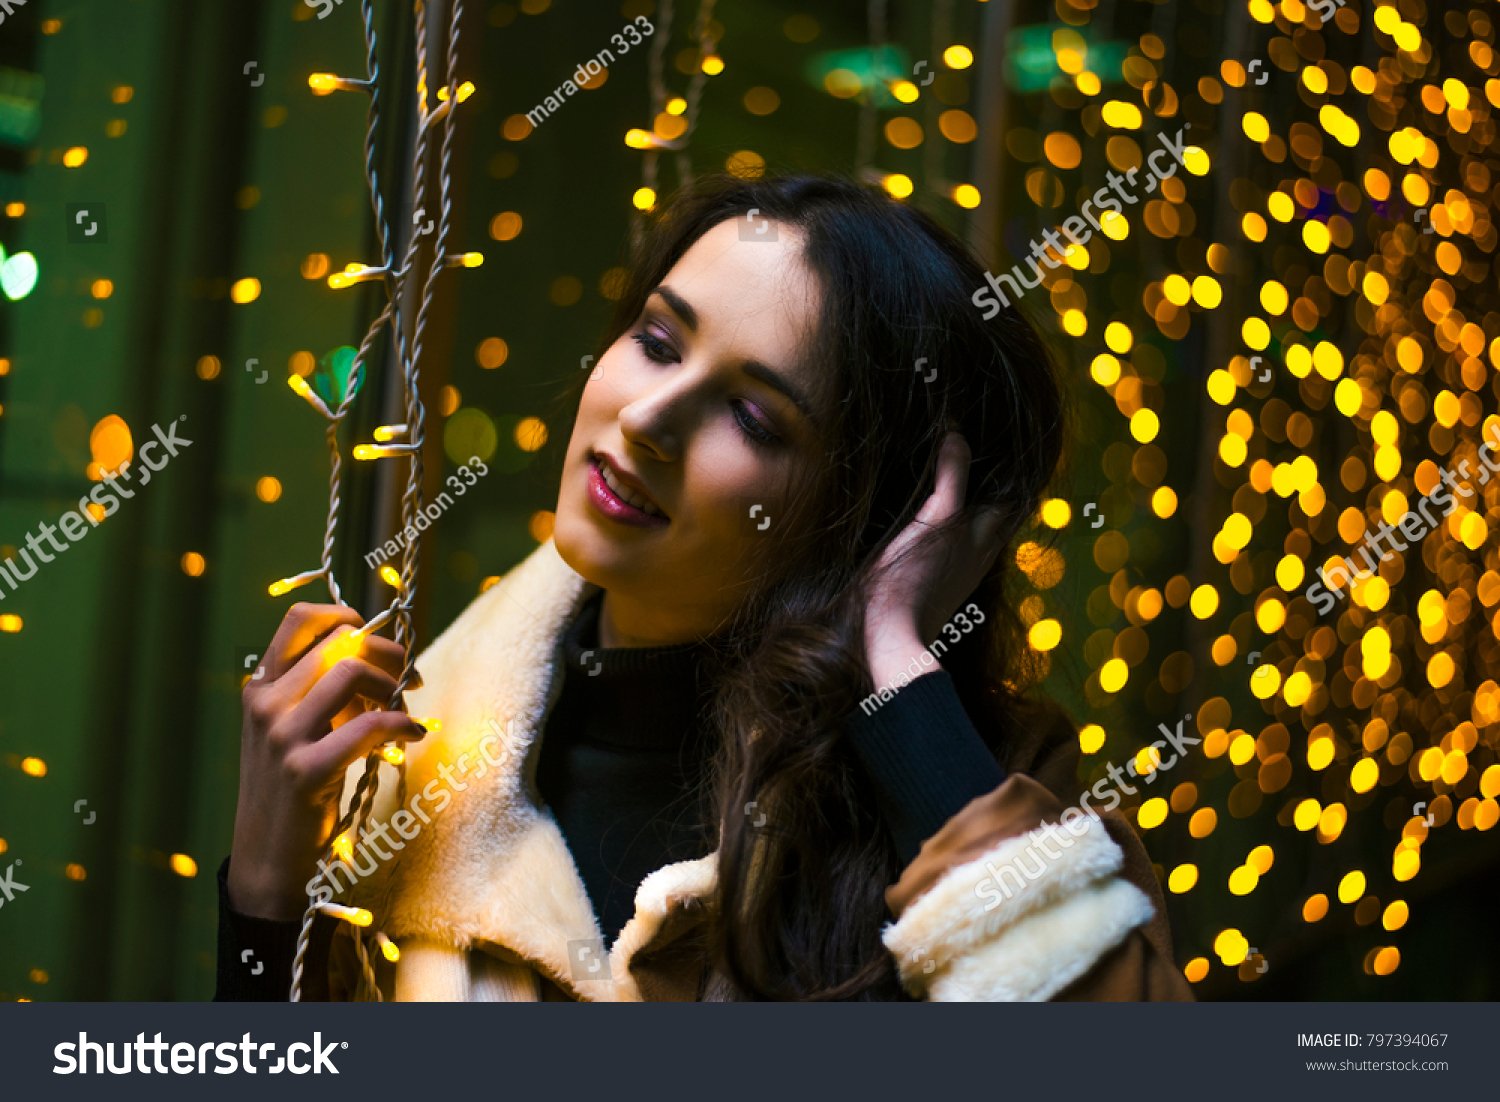 Beautiful asian girl looking dawn on the night city street. background With  bokeh. Copy